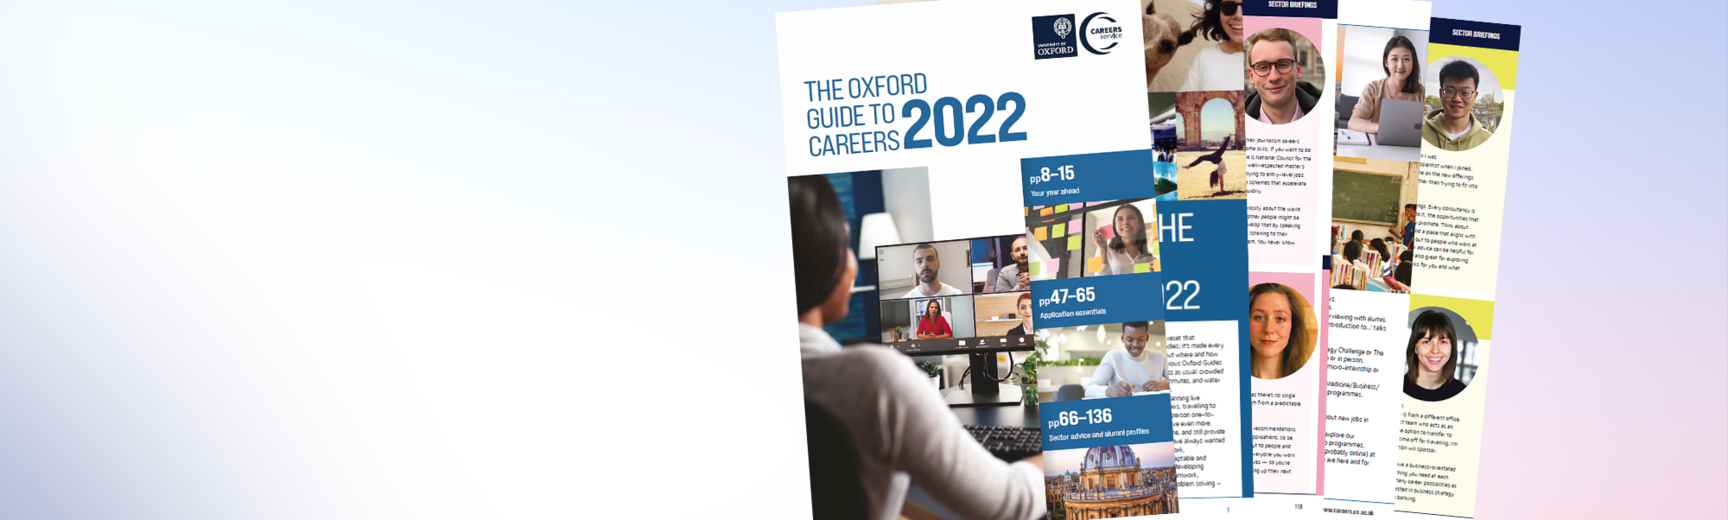 Oxford Guide to Careers 2022 homepage banner